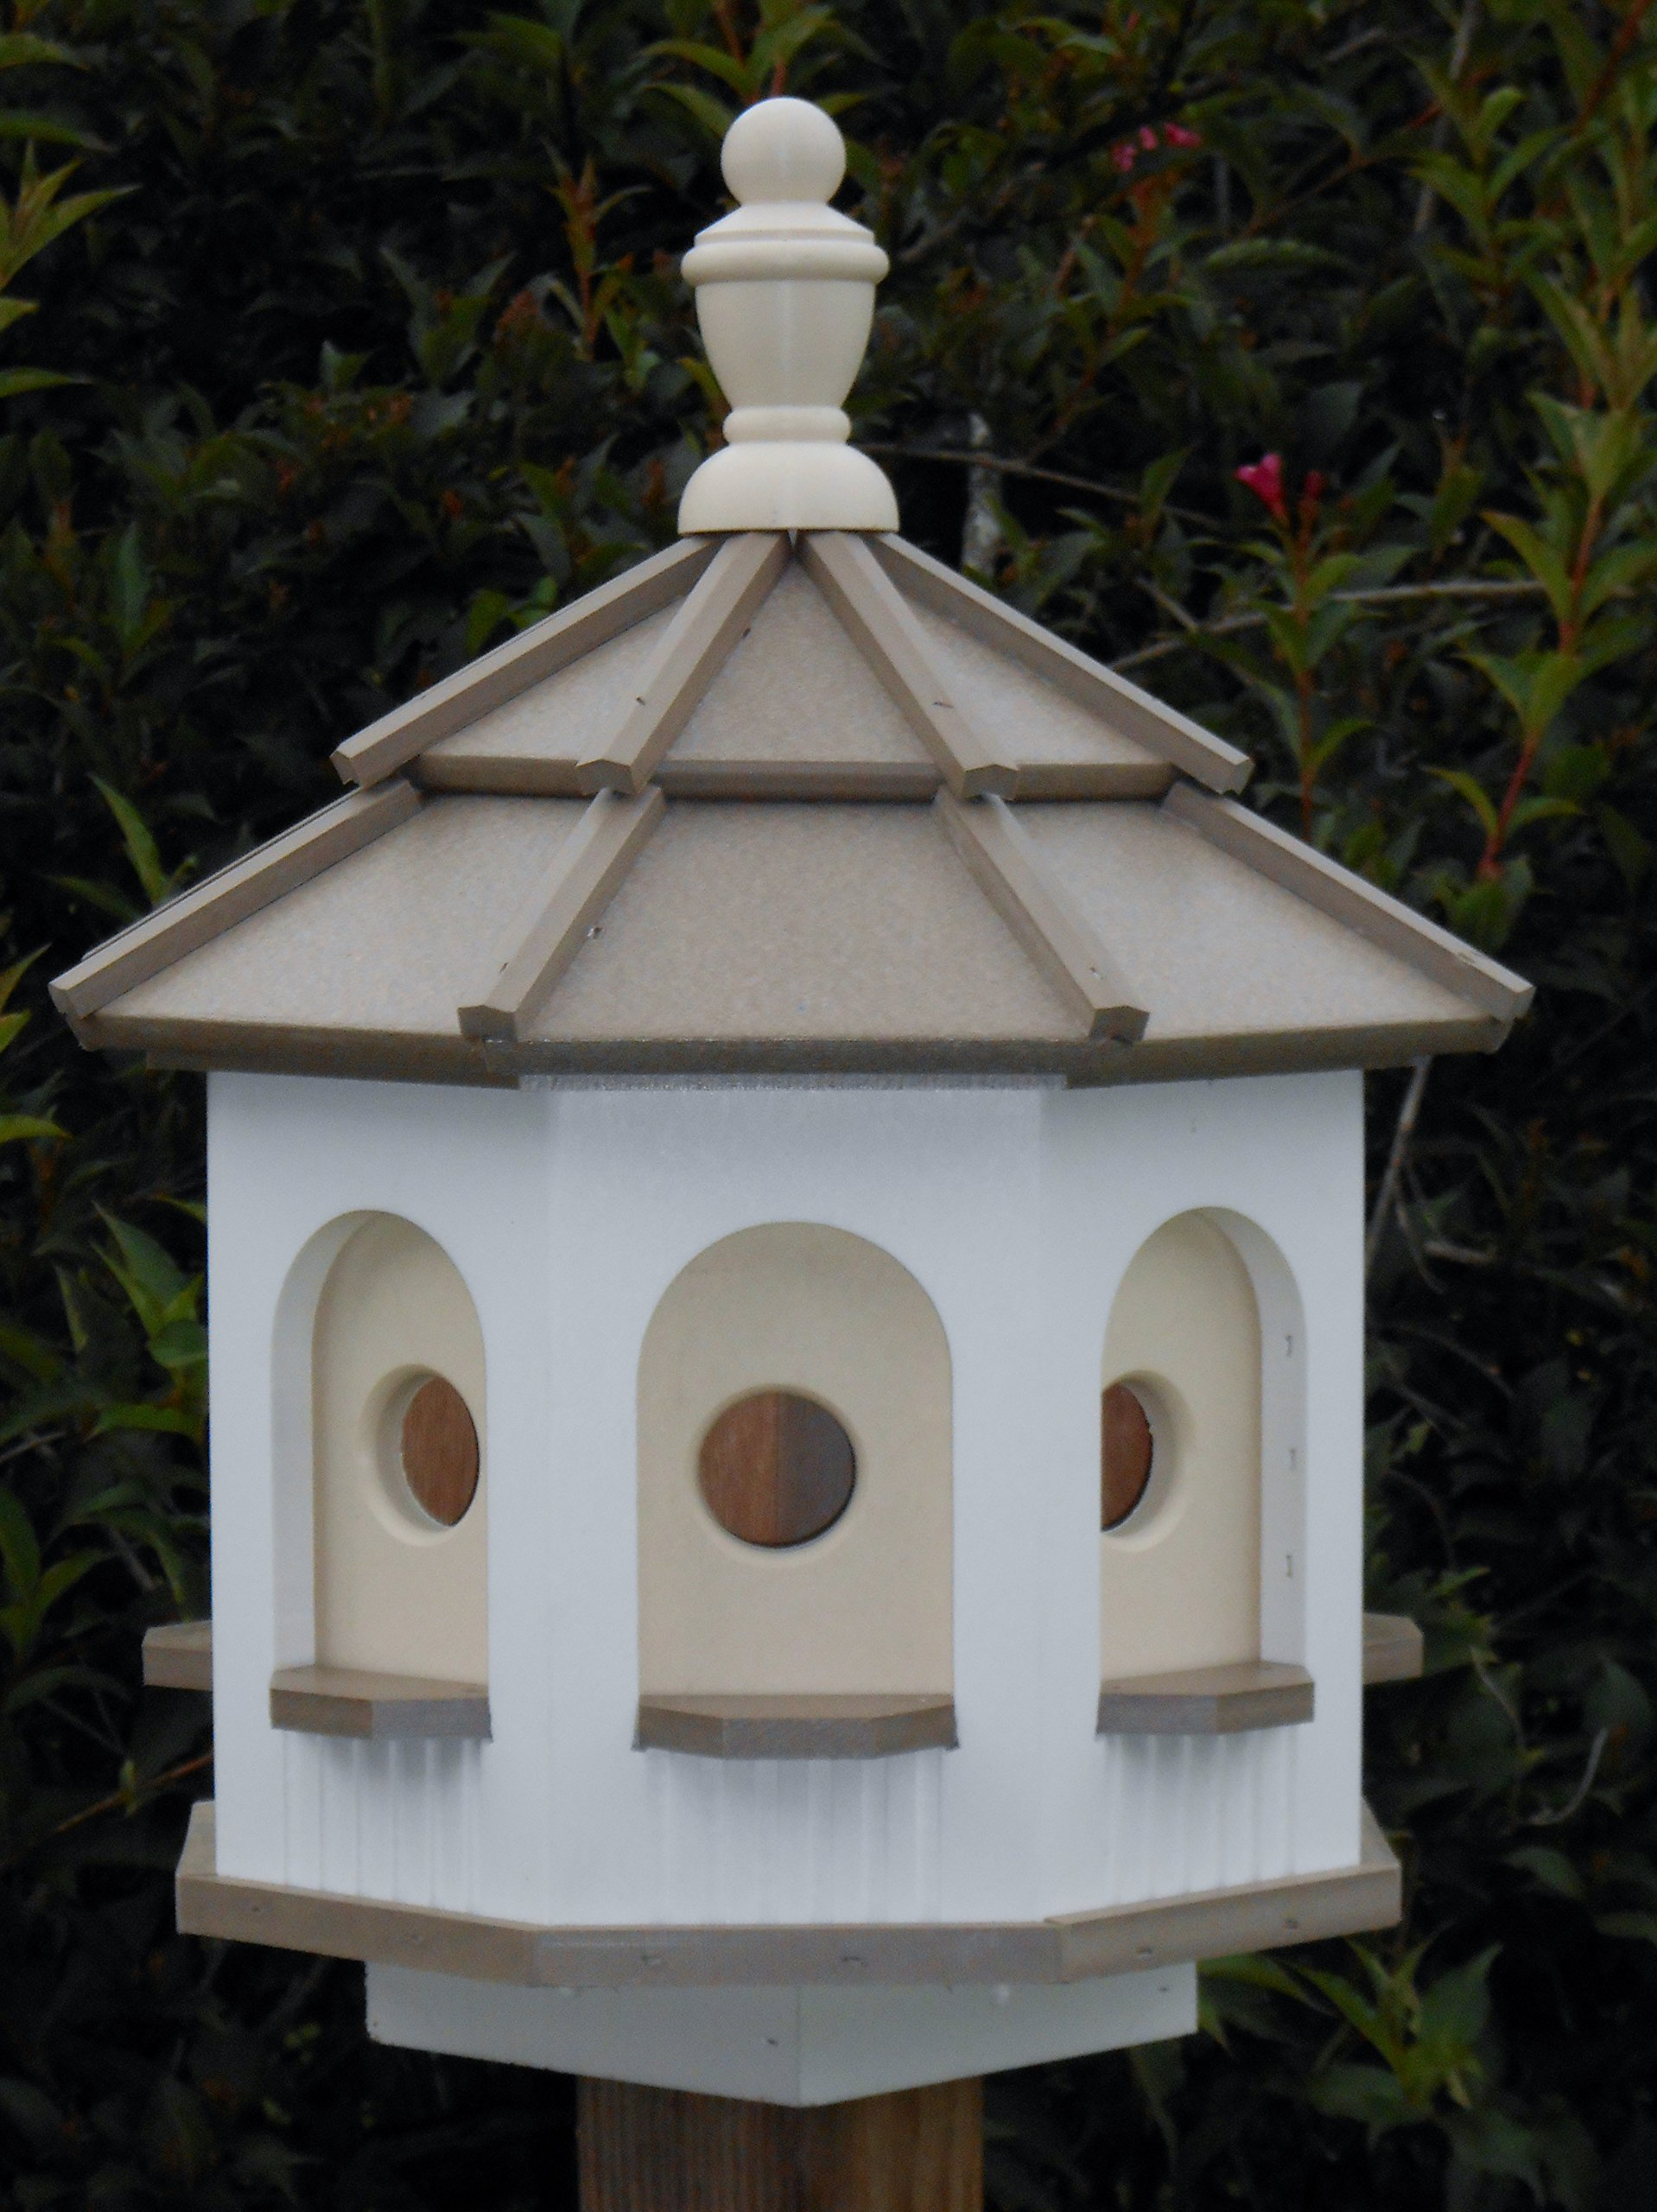 Medium Vinyl Birdhouse Amish Homemade Handmade Handcrafted White & Clay